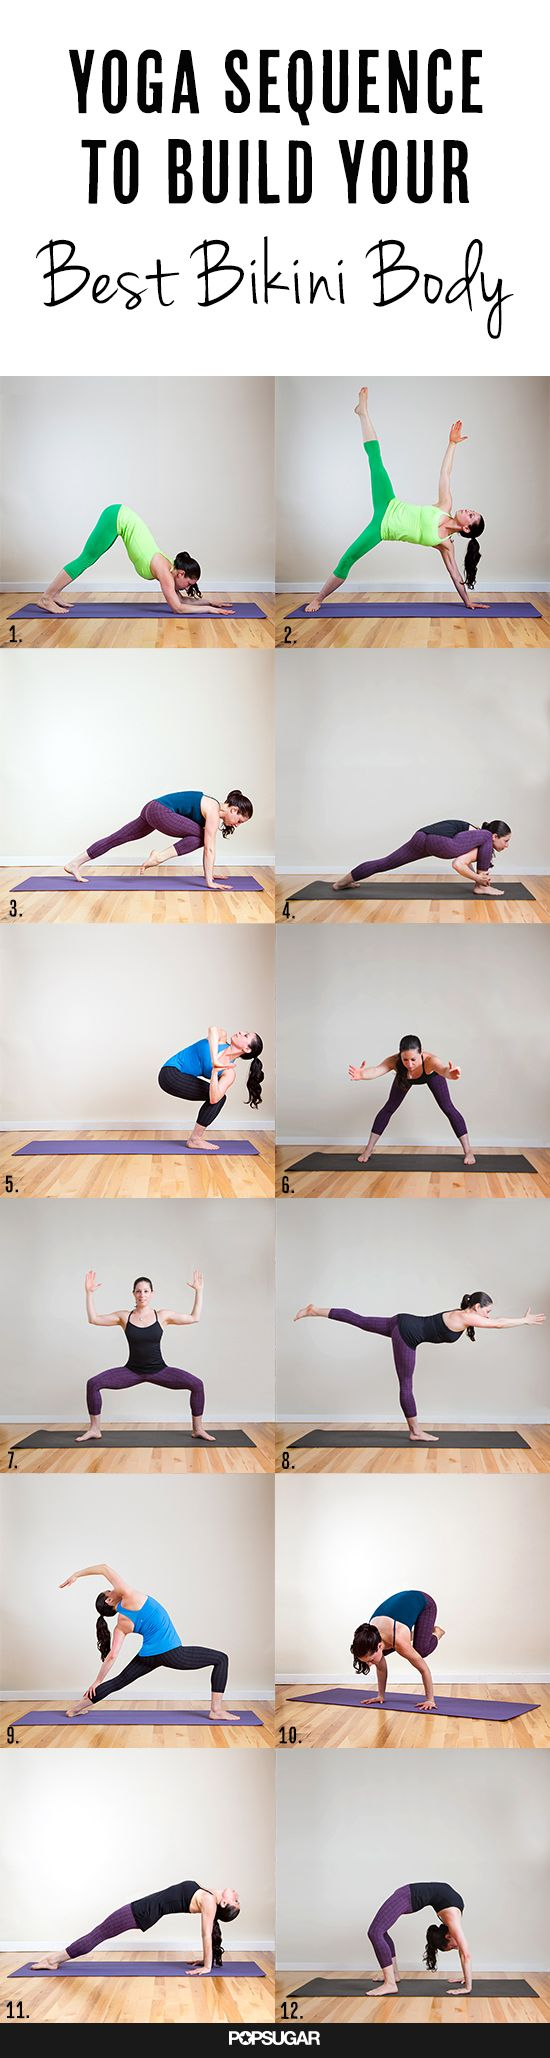 Dynamic Yoga Sequence to Build Your Best Bikini Body....hold each pose for 5 breathes, then repeat on the left side. One day girl....one day.